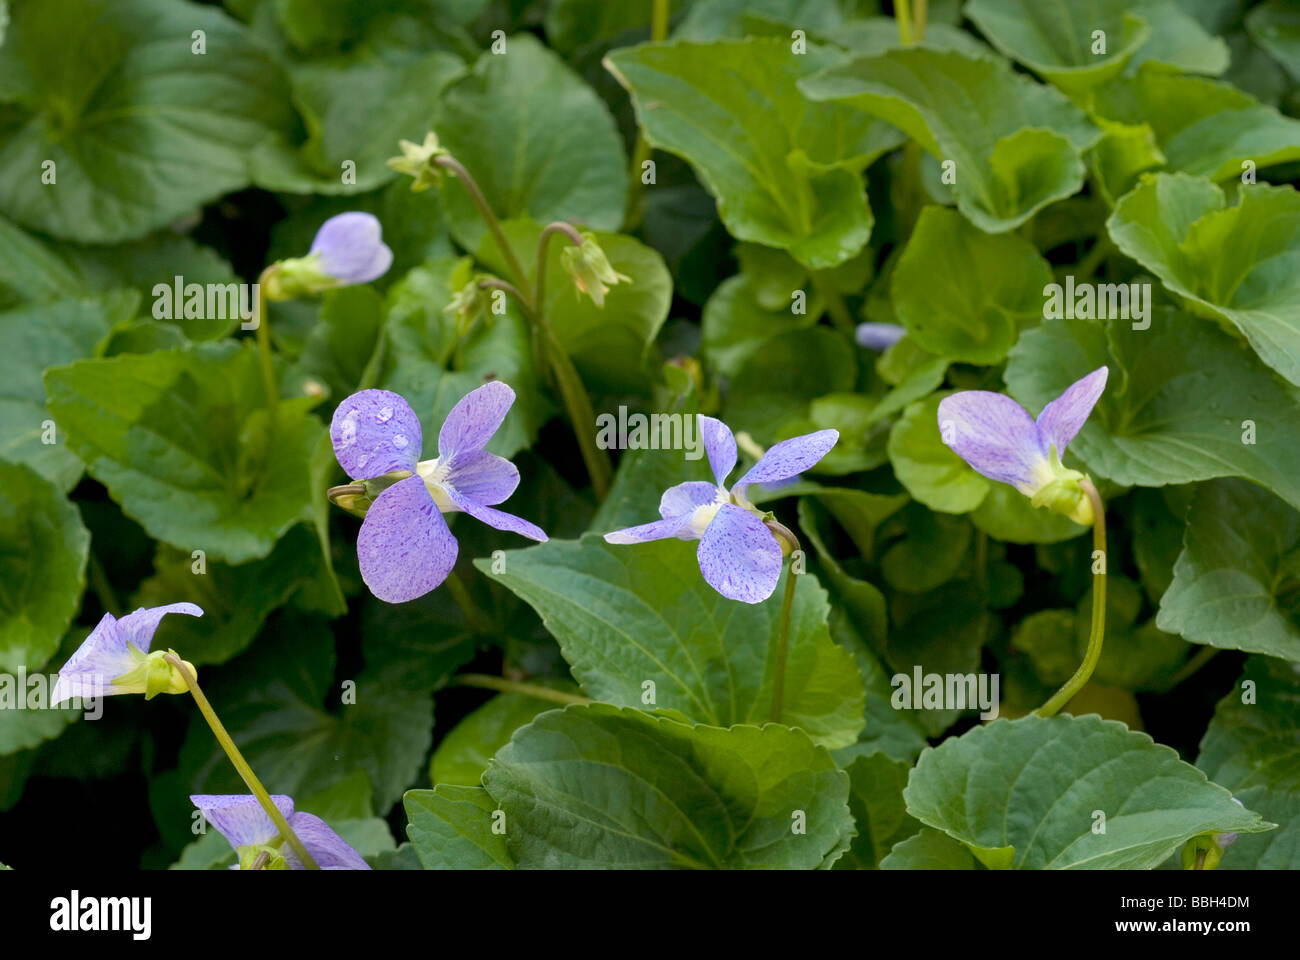 Common Blue Violet Viola sororia 'Dark Freckles', Violaceae - Stock Image